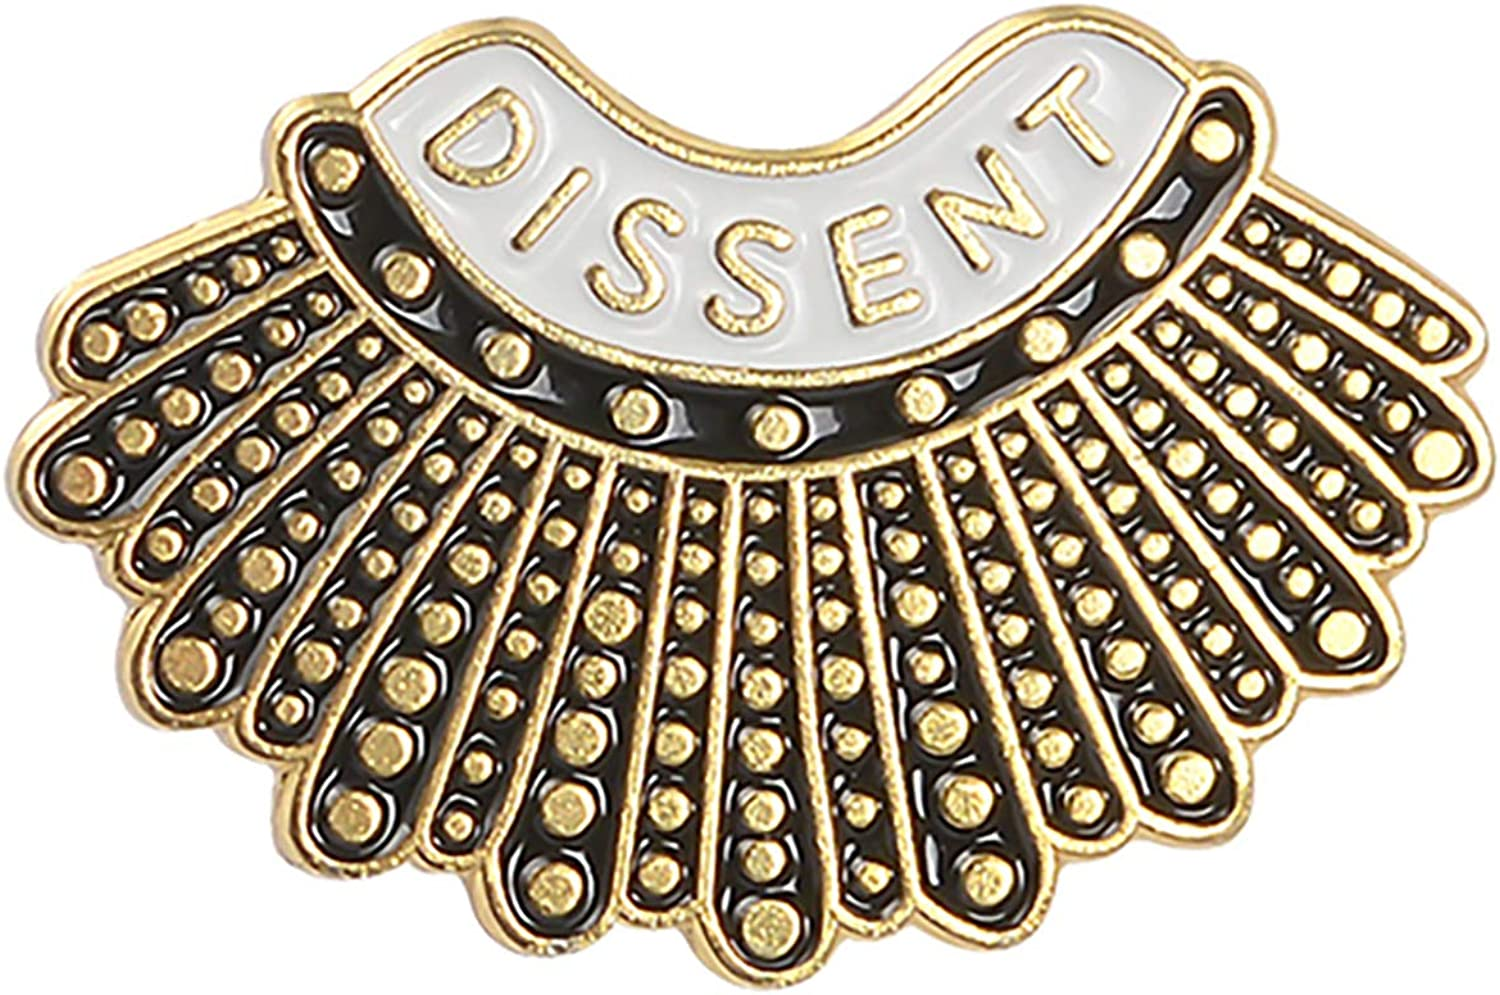 ROSTIVO Enamel Pins Dissent Pin Ruth Bader Ginsburg Feminist Pin RBG Dissent Collar Pin Female Justice Brooches